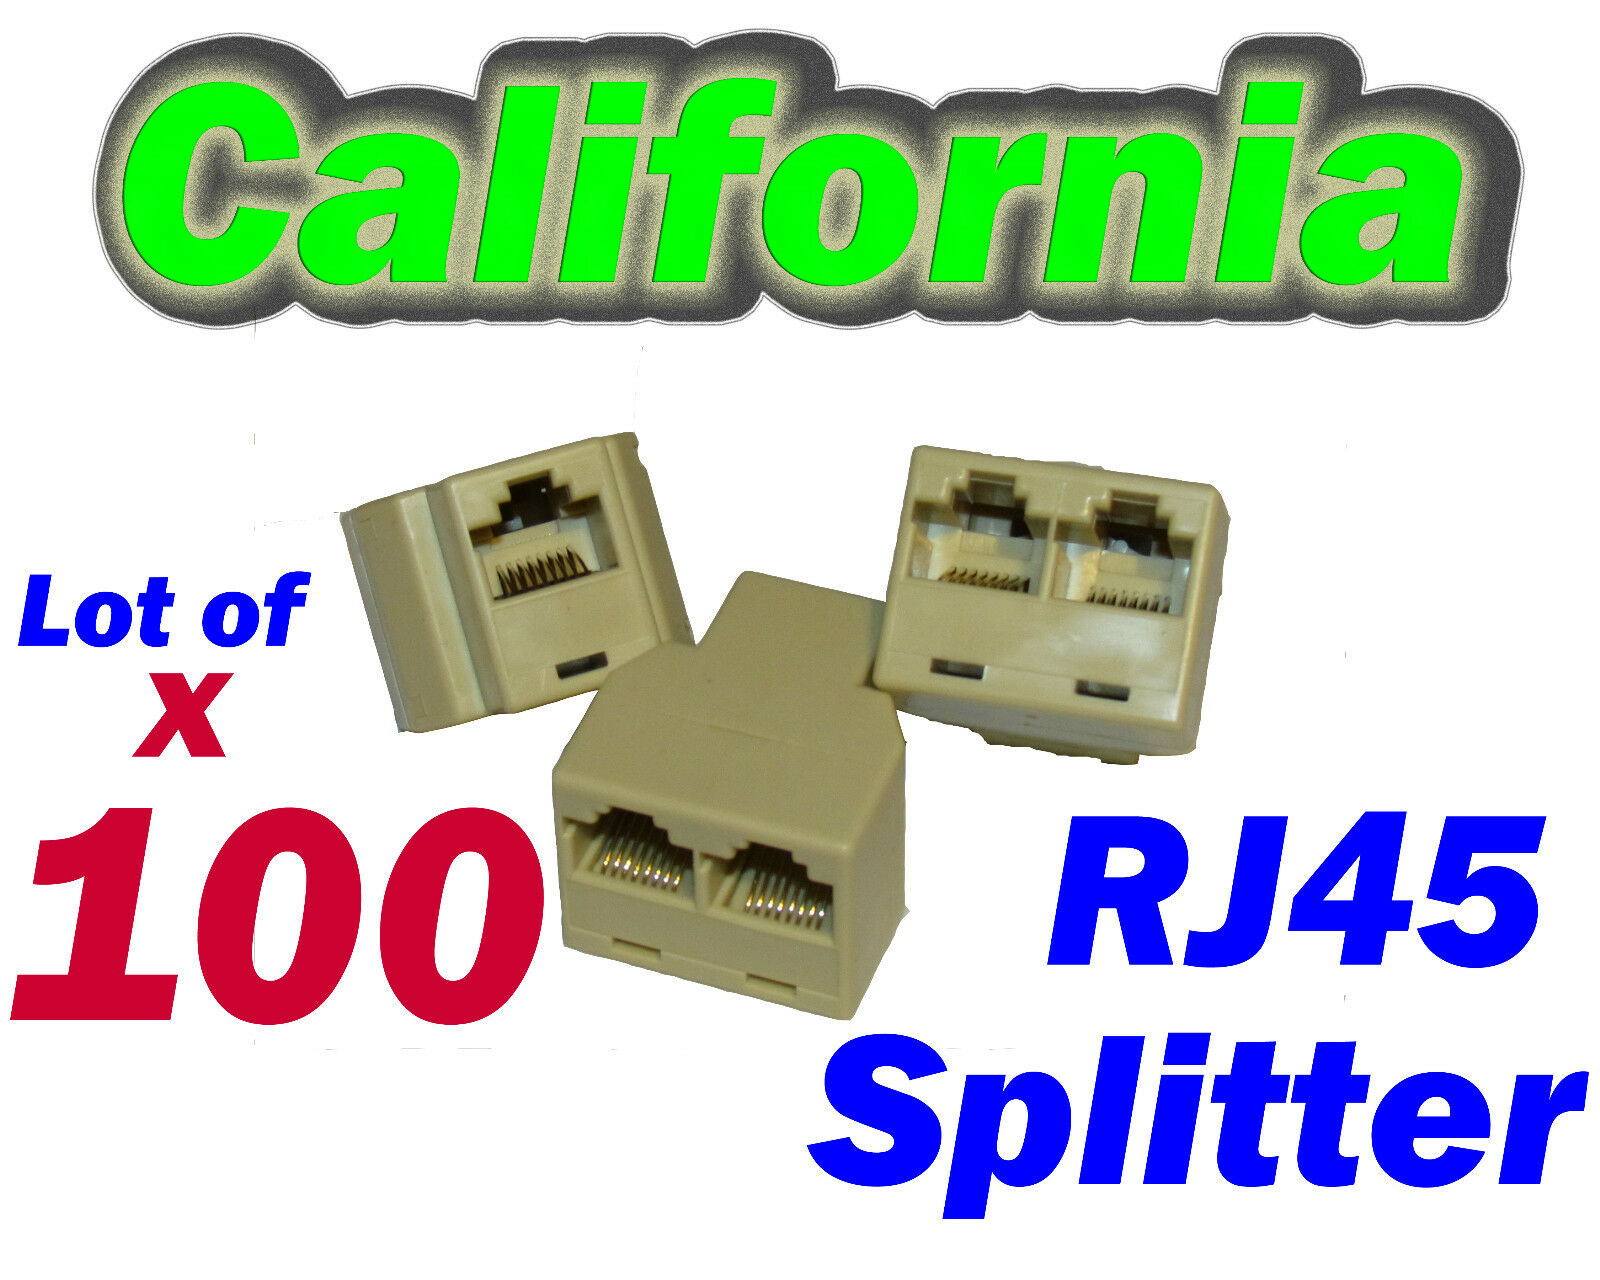 Lot 100 Rj45 Network Splitter Cable Extender Cat5 Plug Coupler Adapter Y 3-way